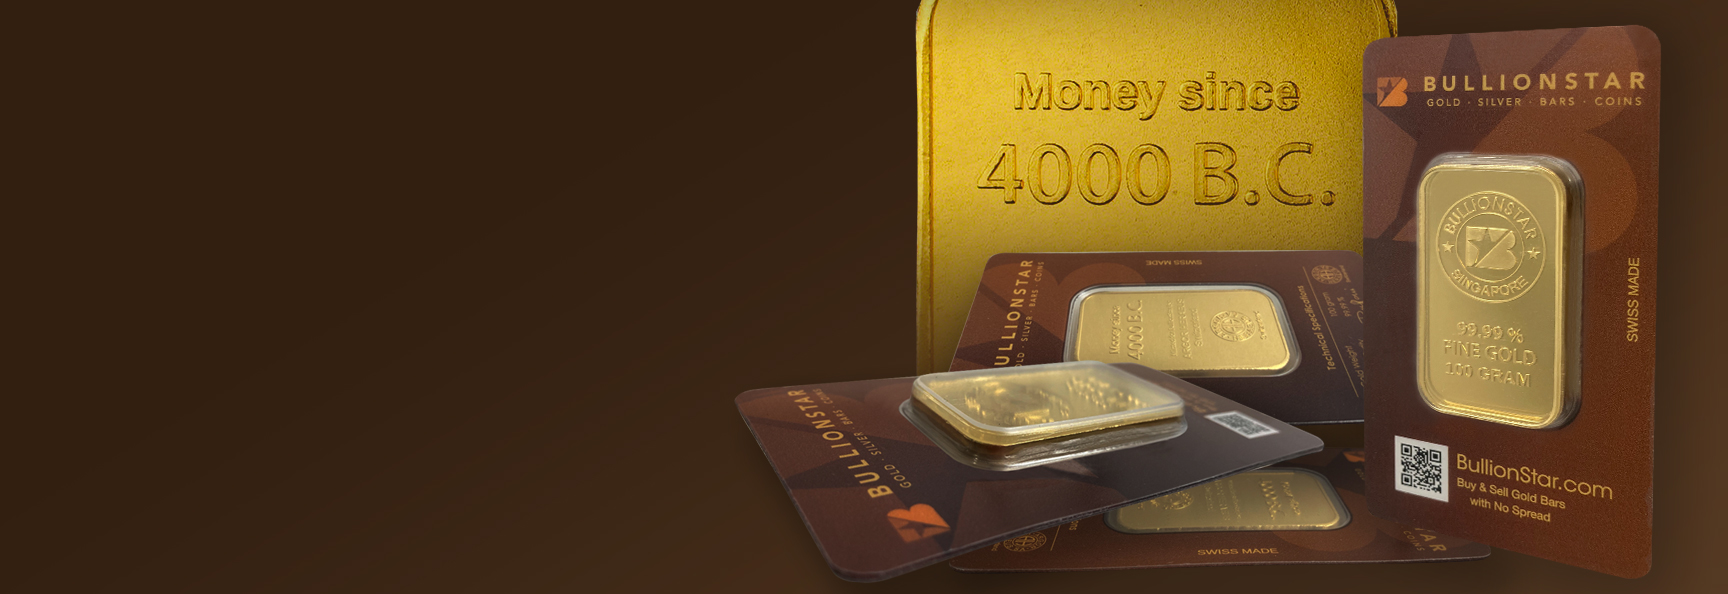 Gold Bars with No Spread